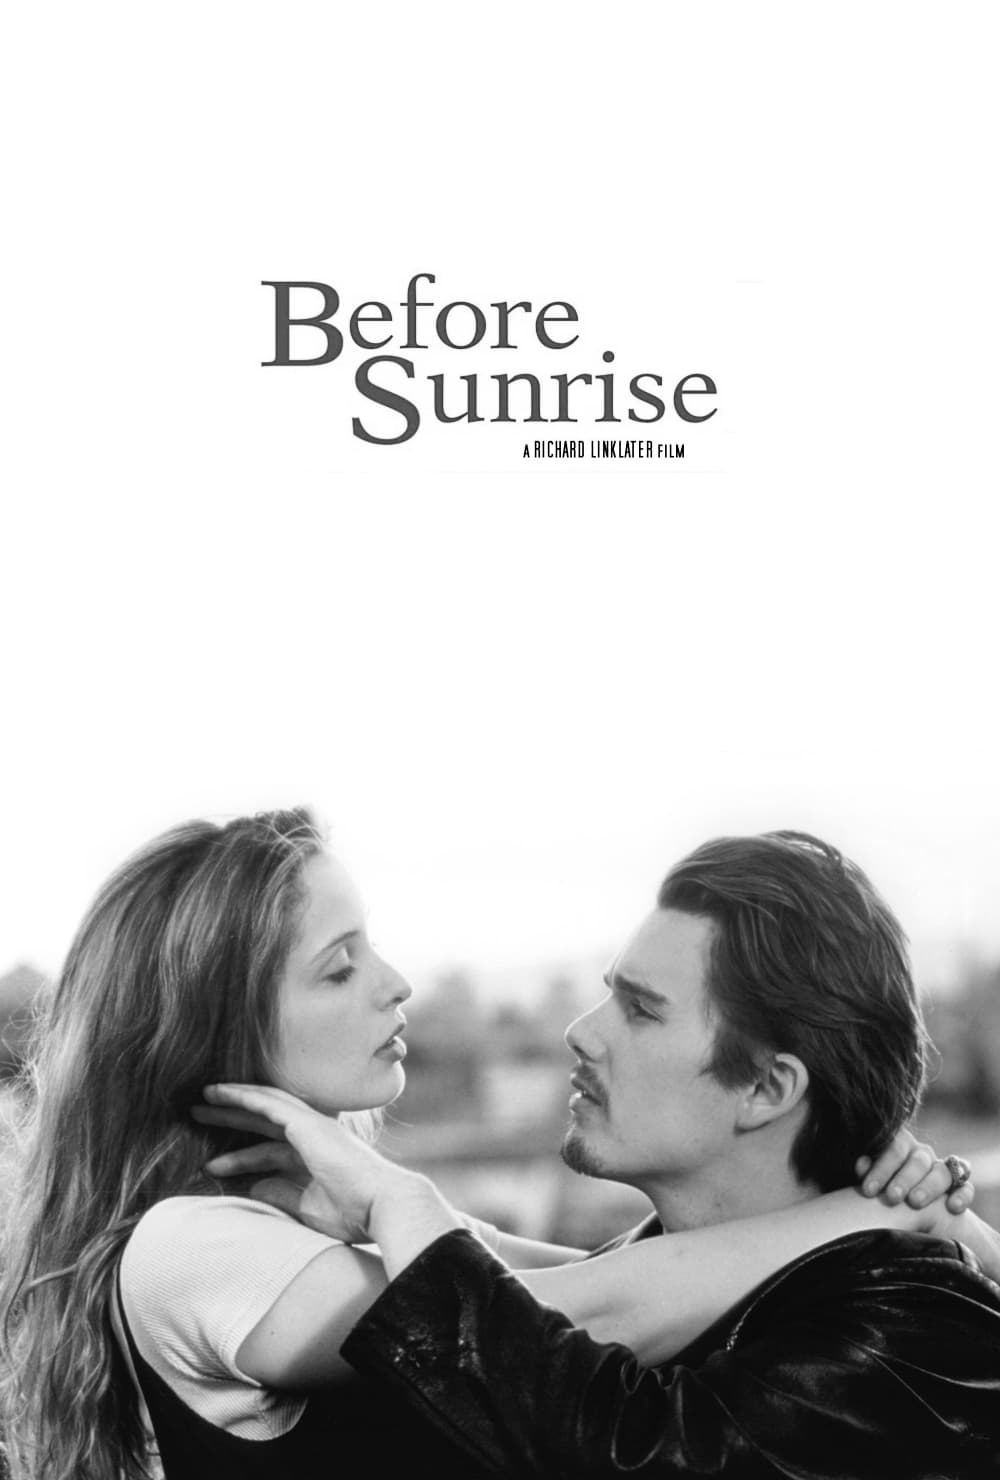 Before Sunrise, by Richard Linklater.